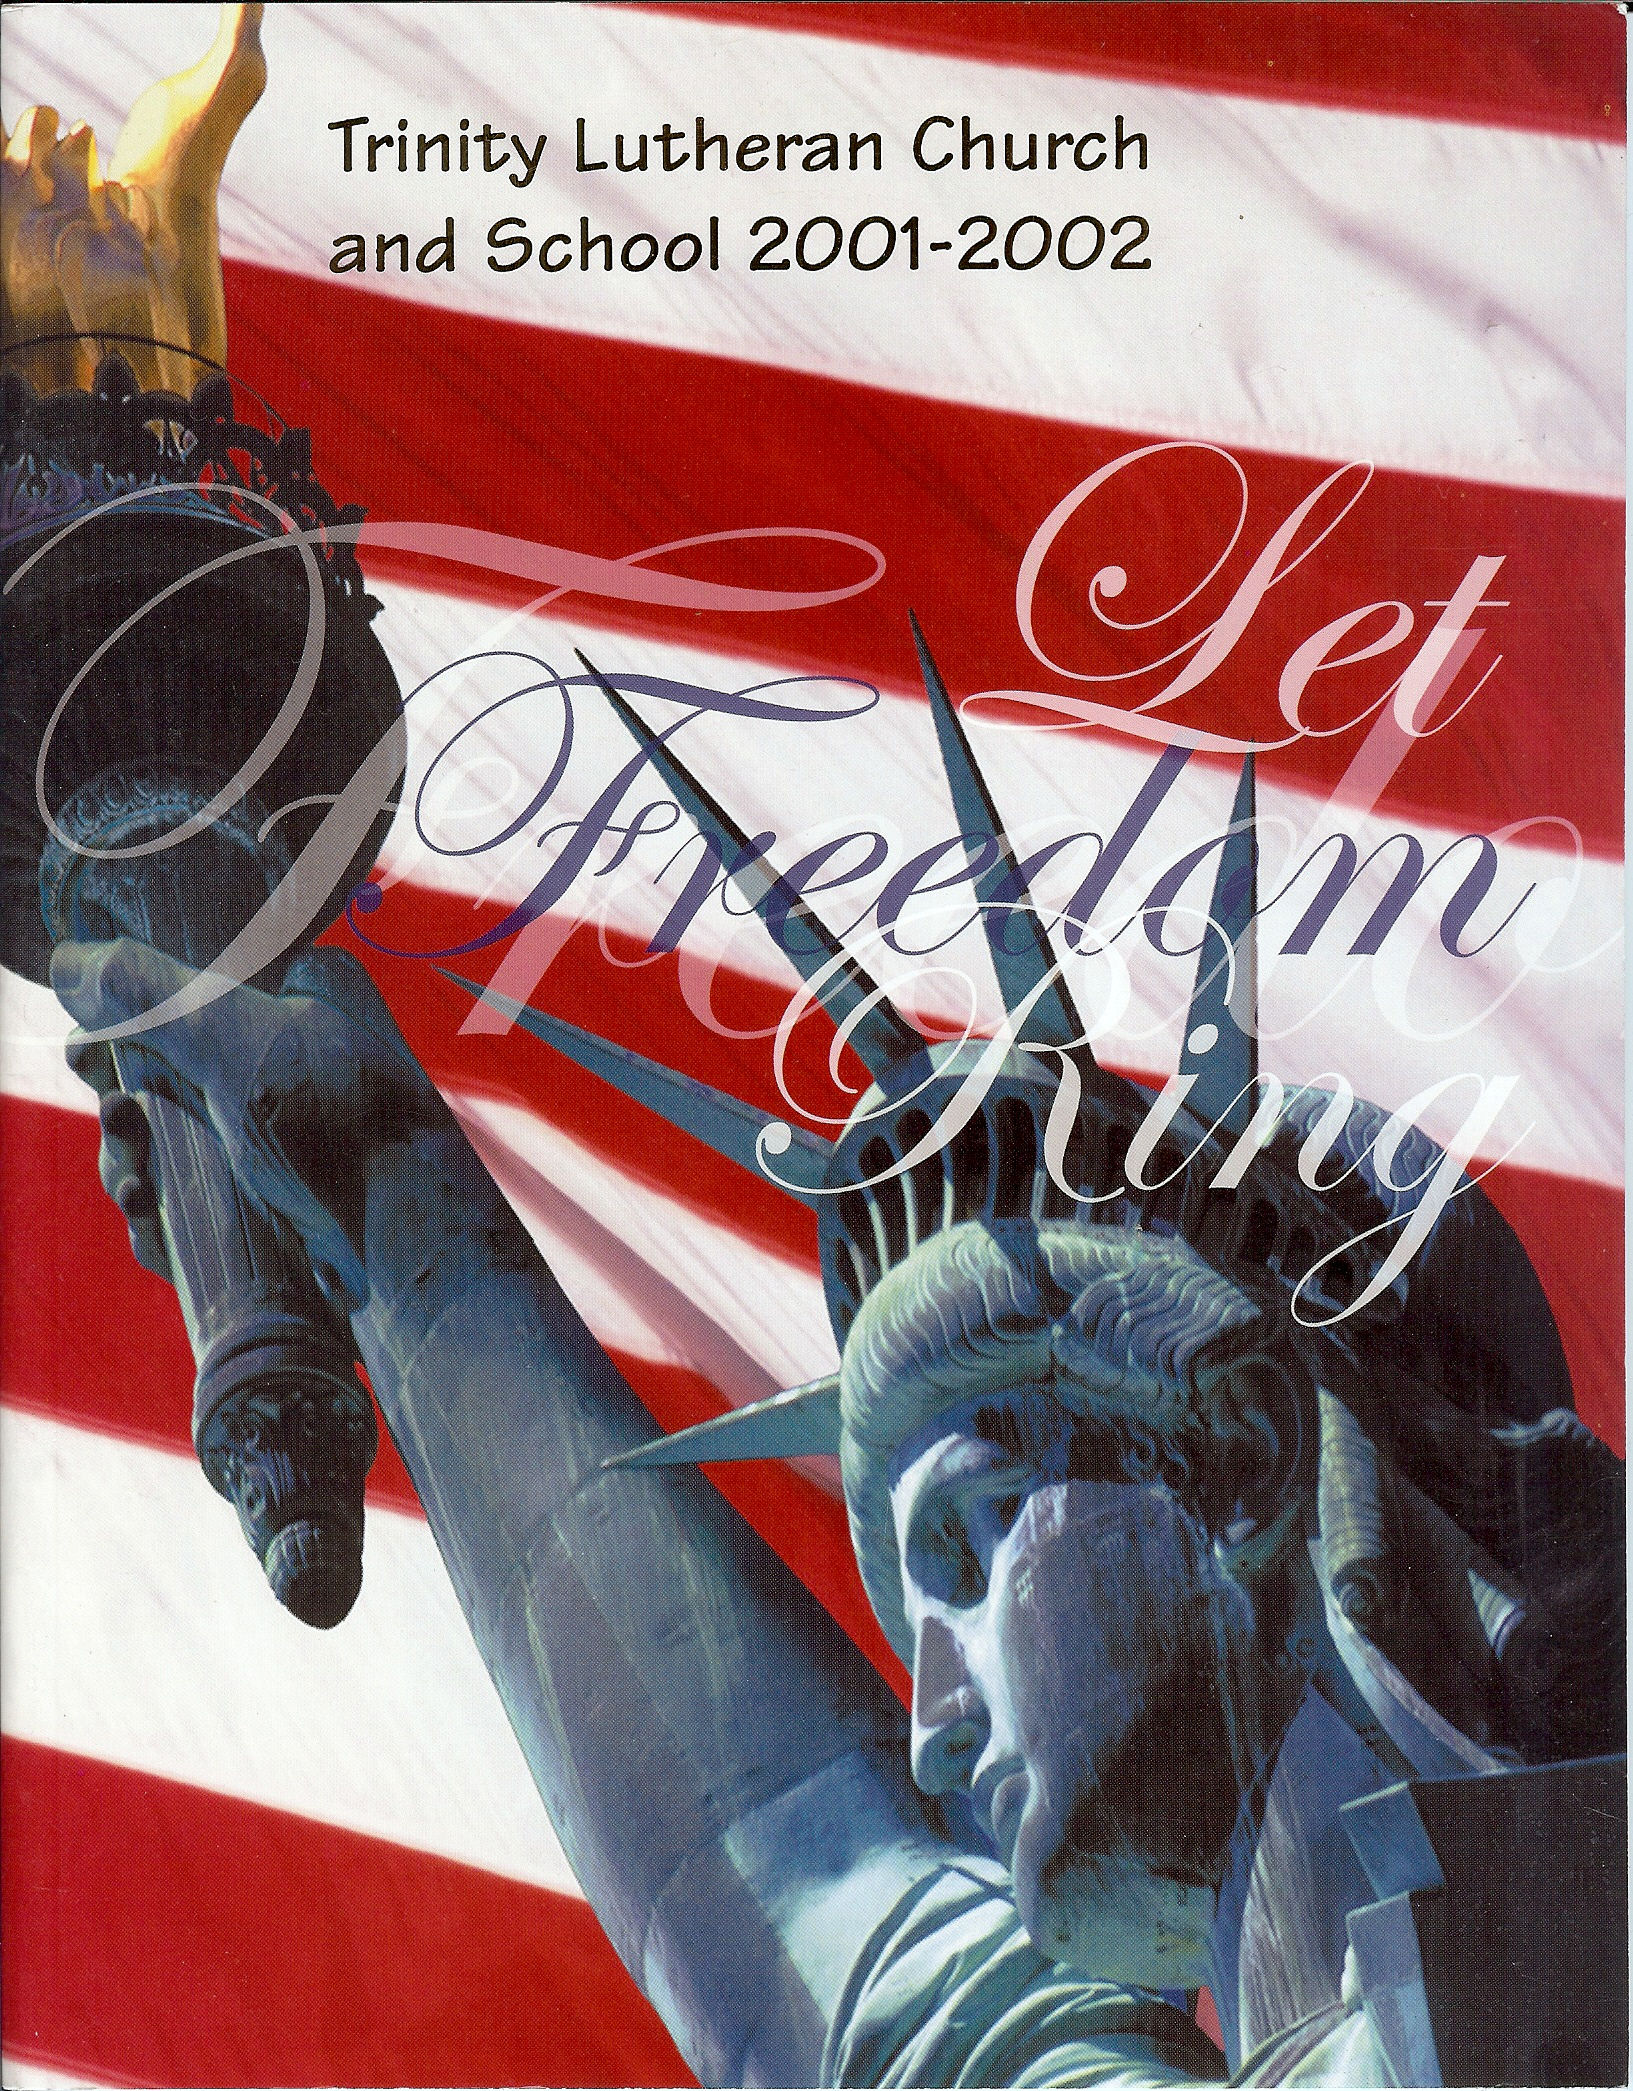 01-02 Yearbook Cover